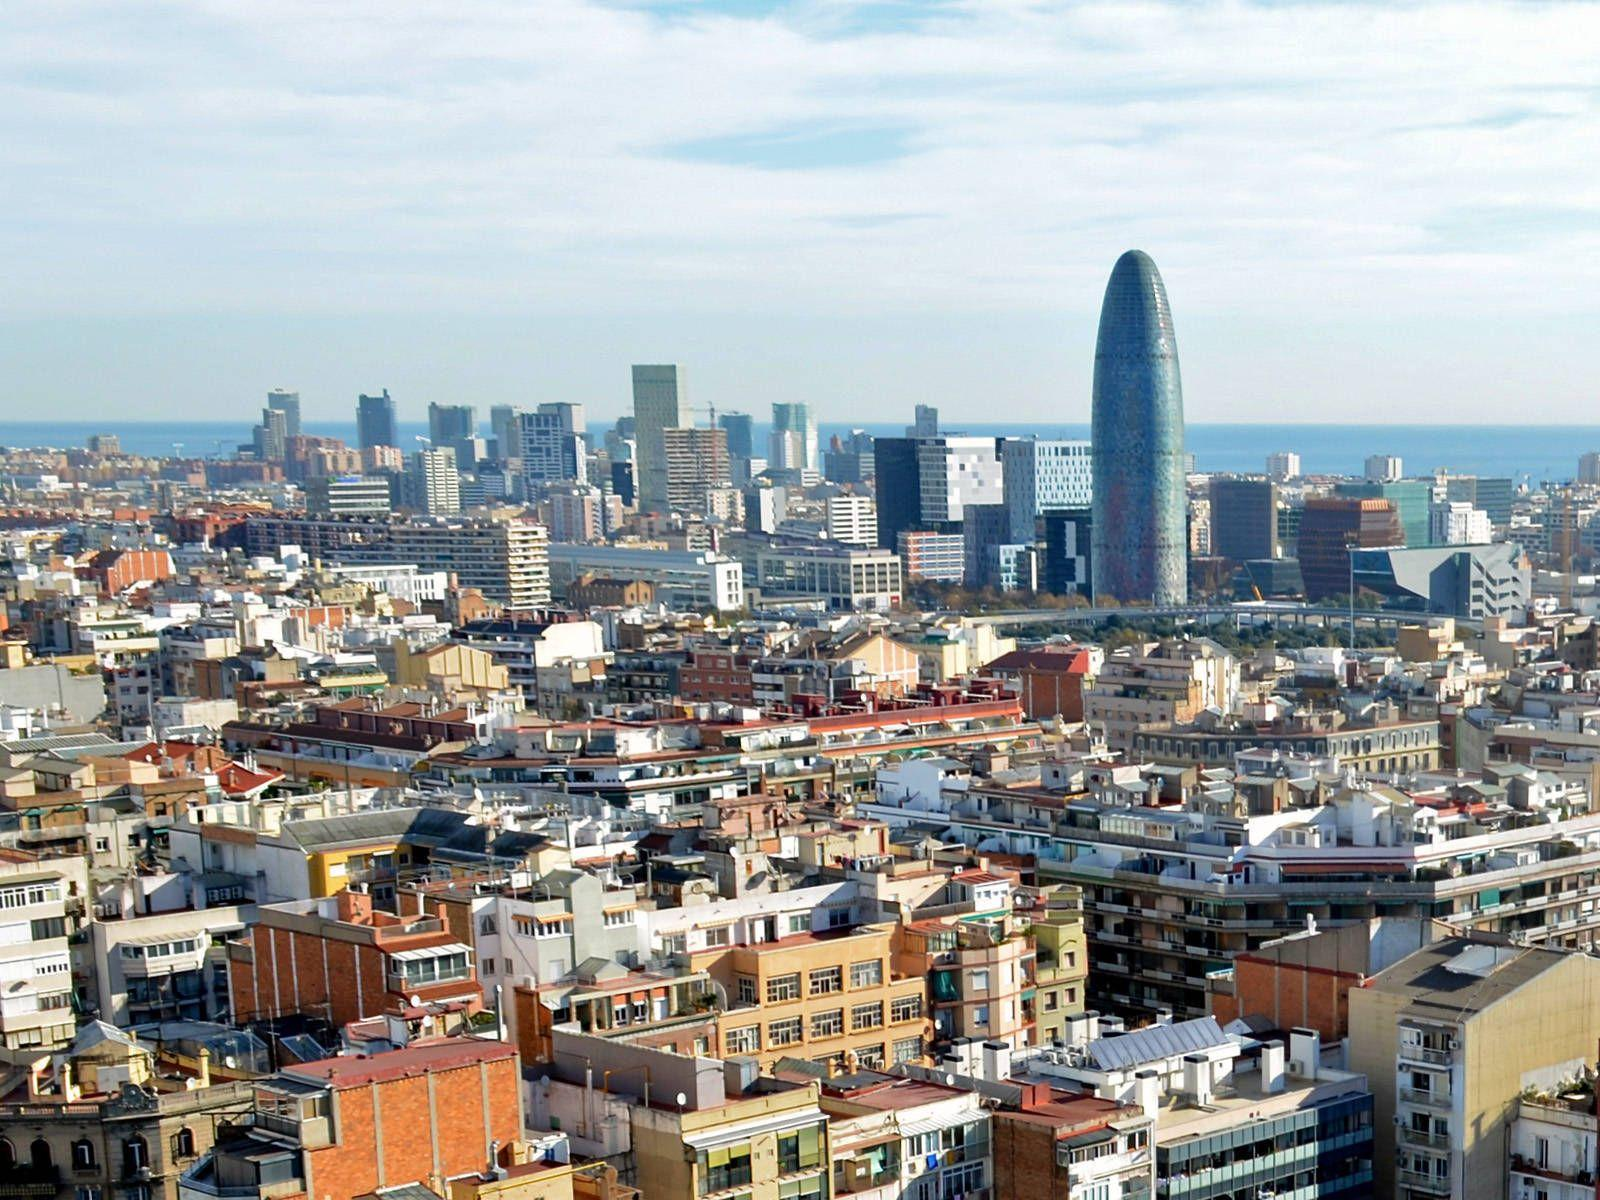 Barcelona city overview in Spain | city wallpaper